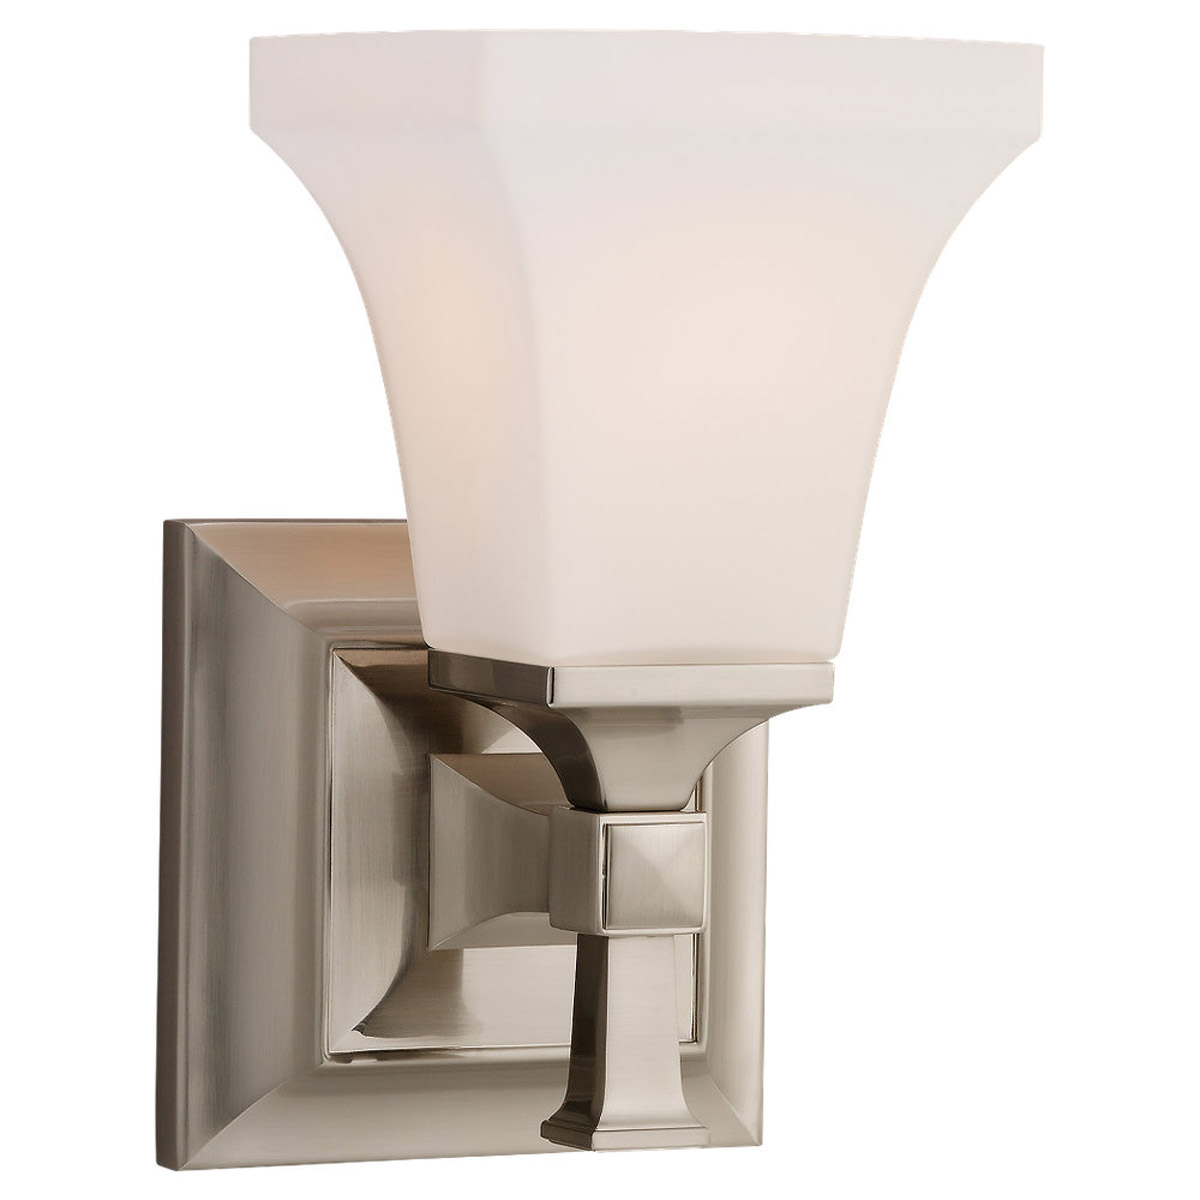 Sea Gull Lighting Melody 1 Light Bath Vanity in Brushed Nickel 44705-962 photo